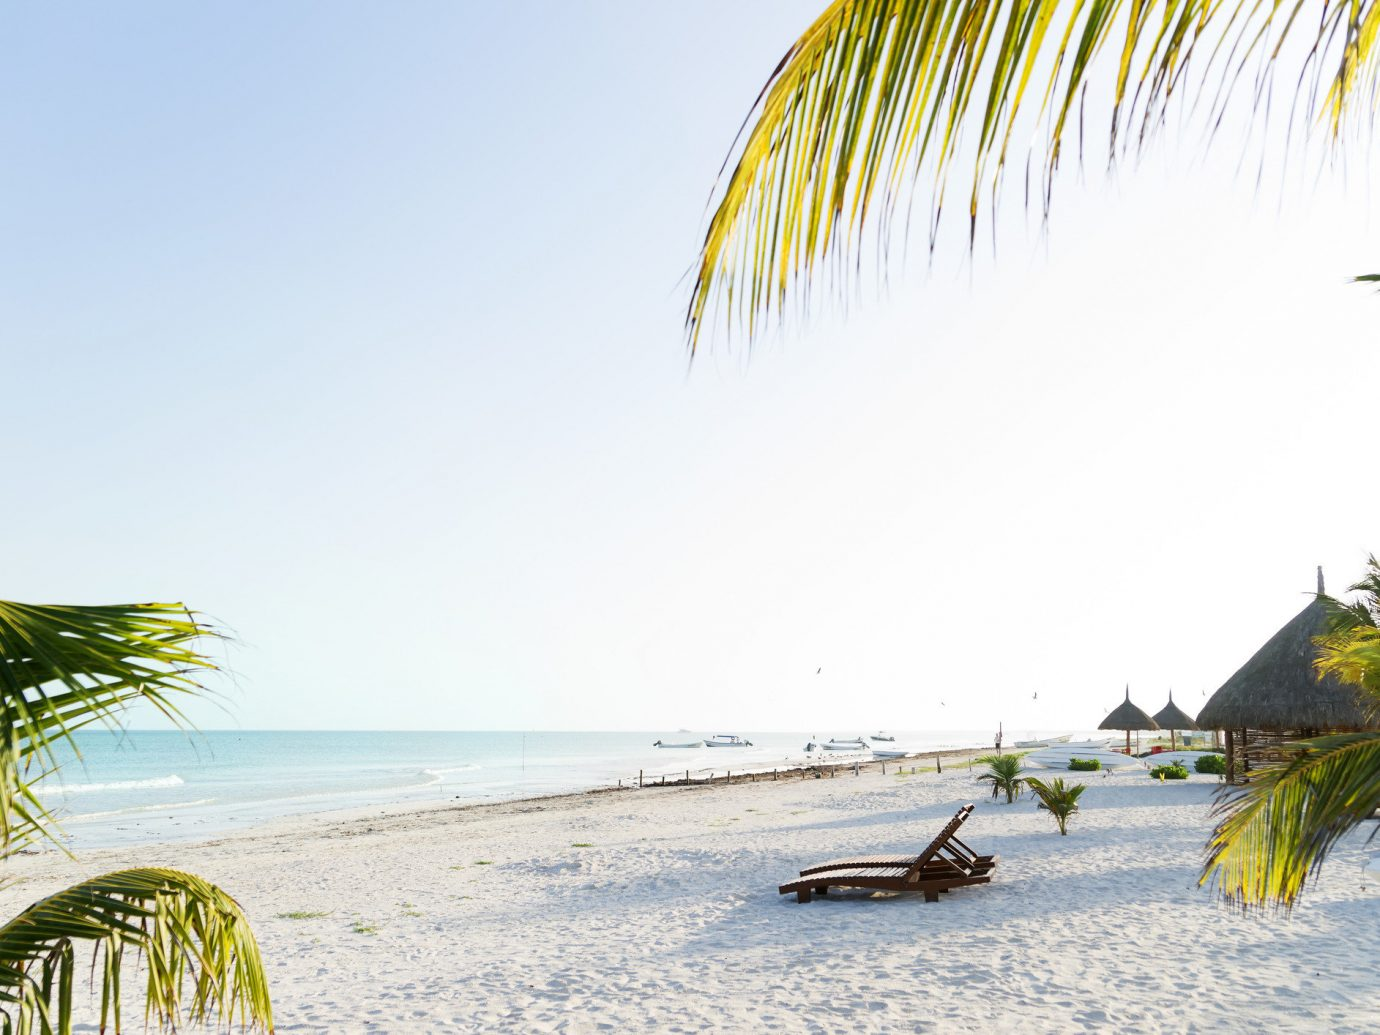 Mexico Secret Getaways Trip Ideas Weekend Getaways sky outdoor water Beach shore plant body of water tree vacation Sea Ocean caribbean Coast arecales palm family tropics sunlight bay palm sand sunny Resort day sandy